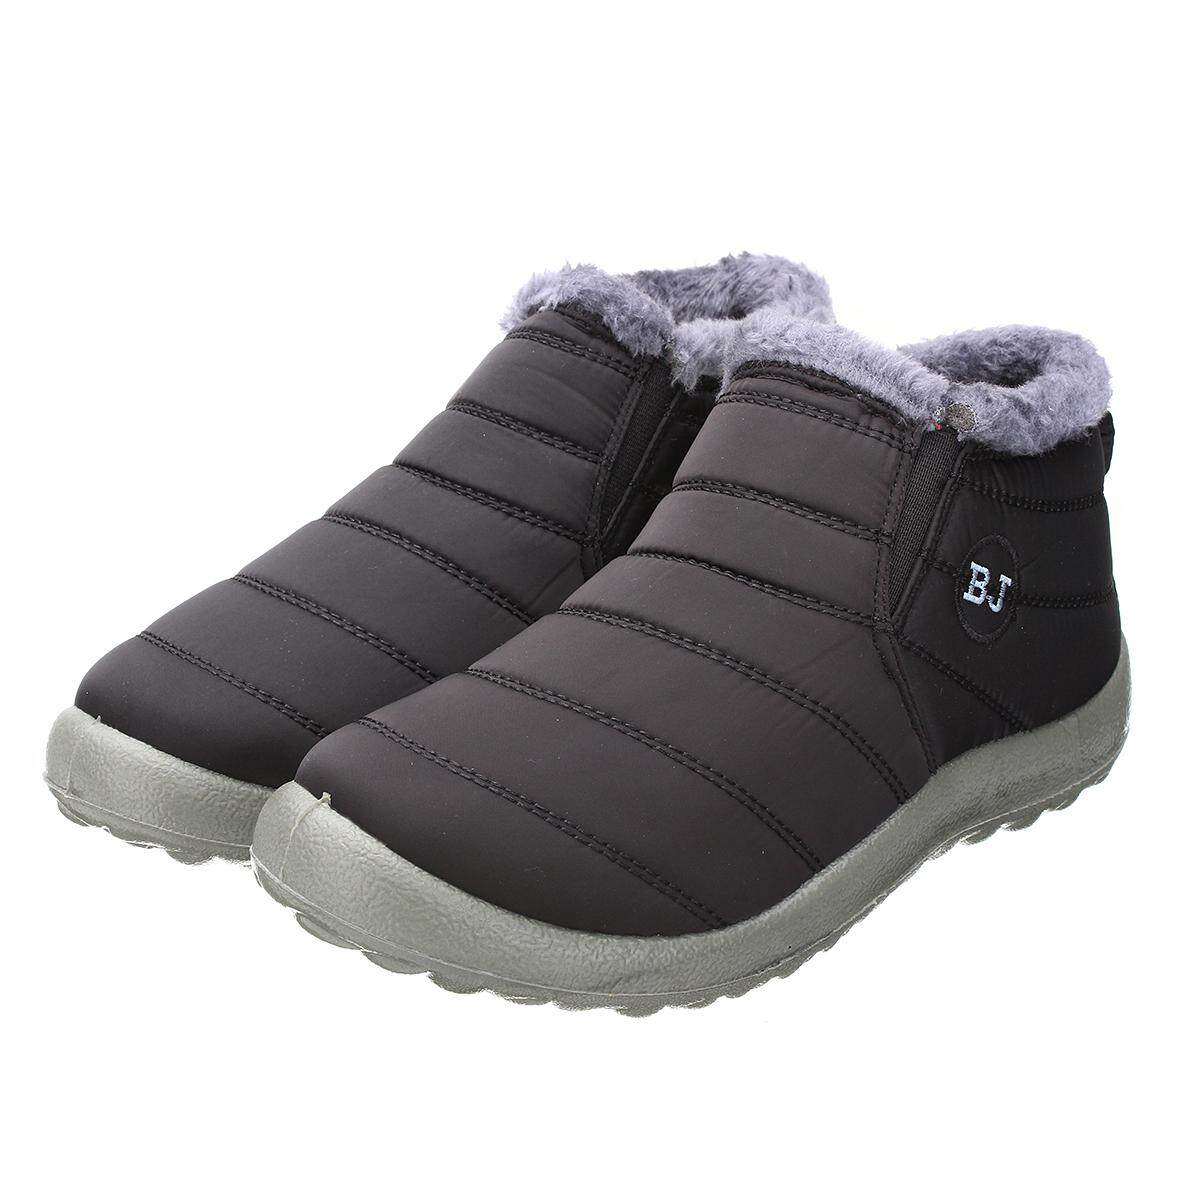 a3ea4641e32 HOT Women s Winter Warm Fabric Fur-lined Slip On Ankle Snow Boots Sneakers  Shoes black